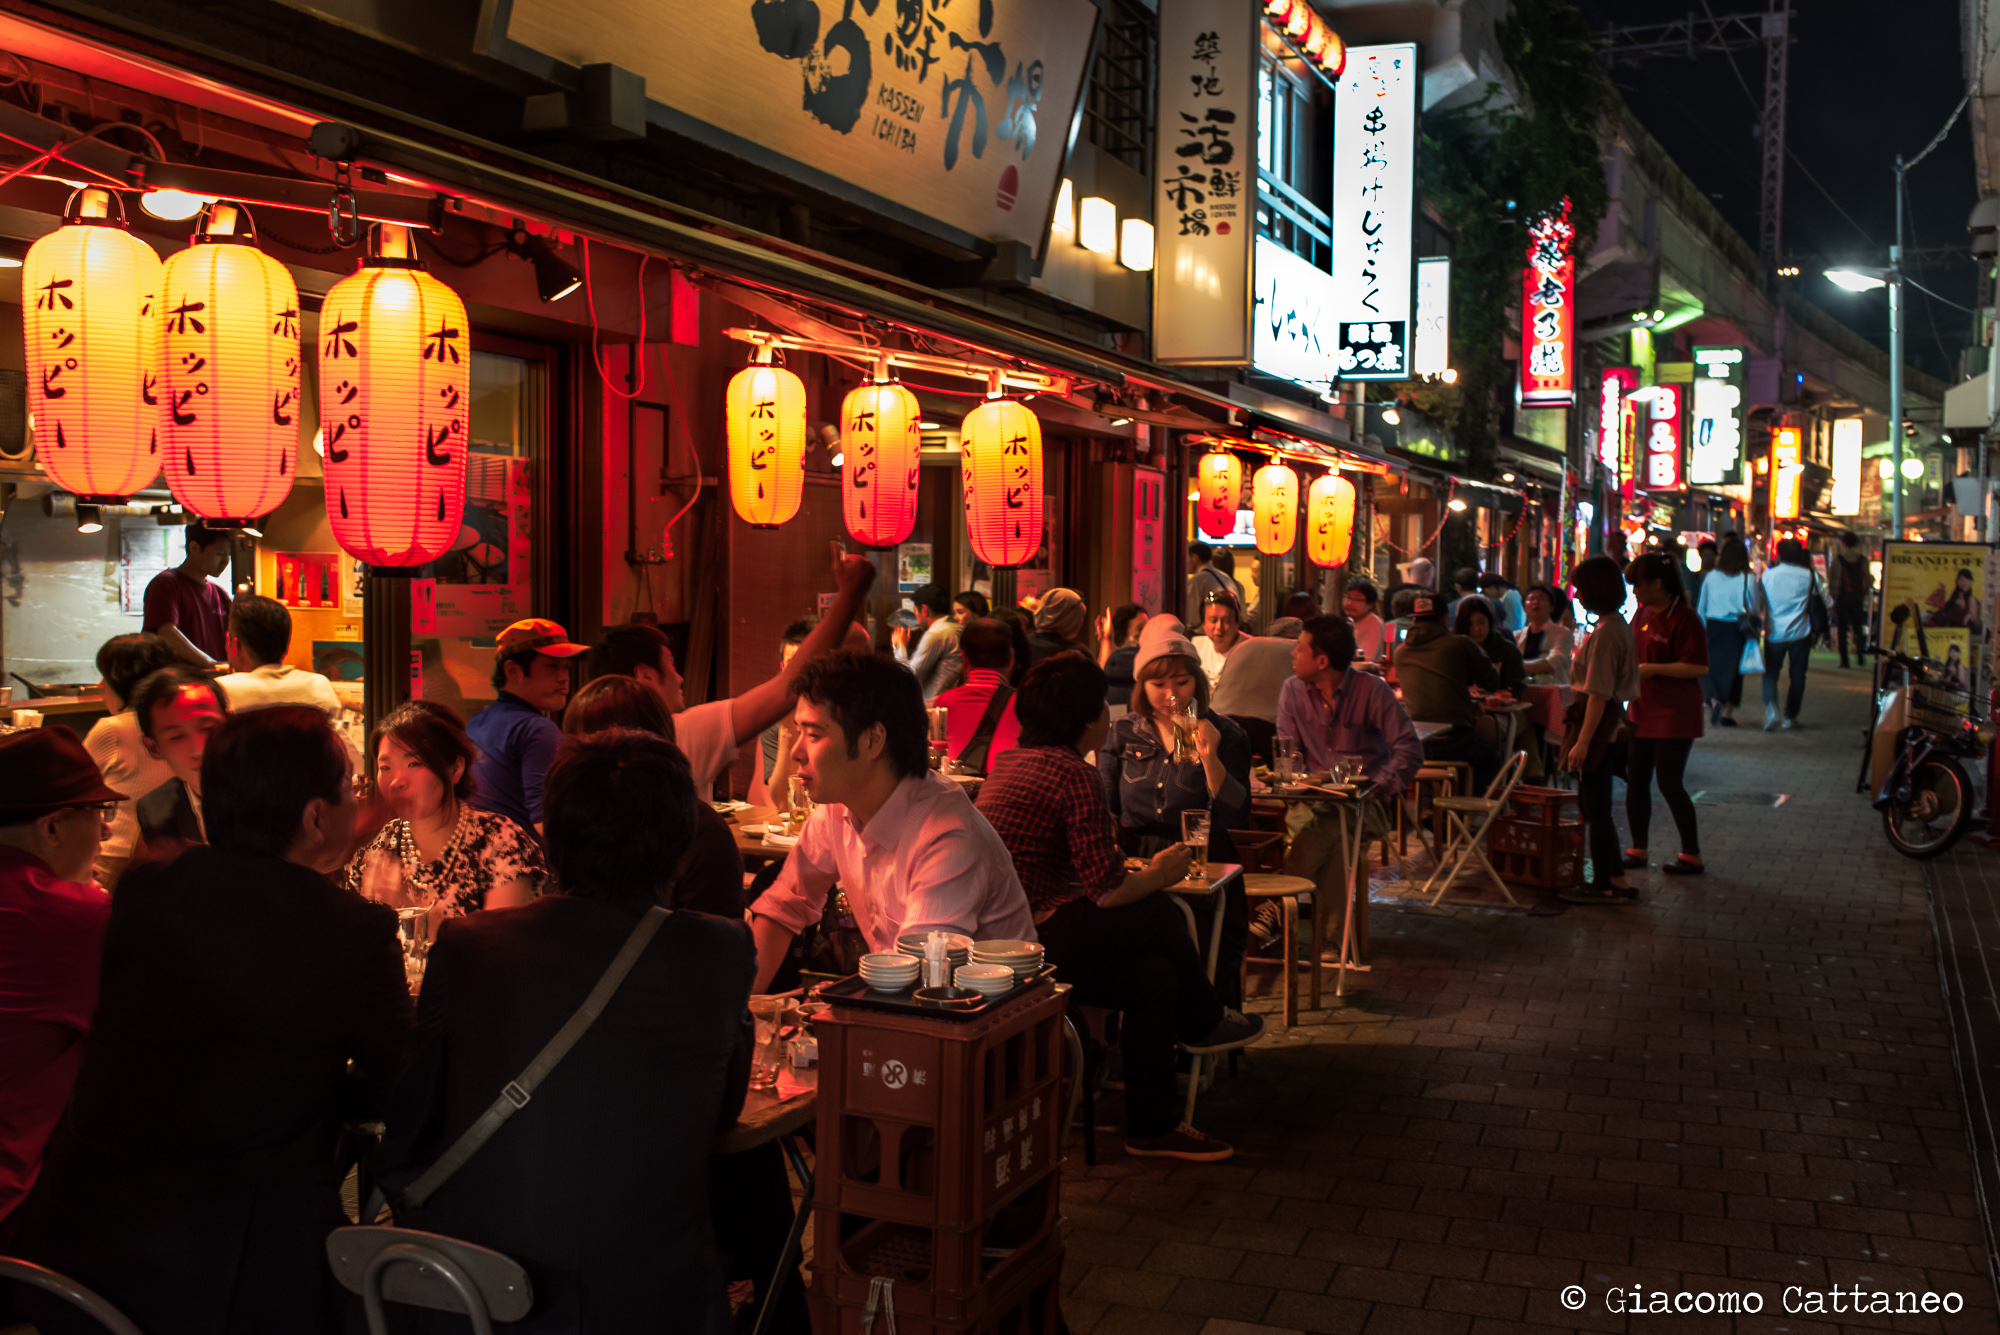 ISO 800, 35mm, f/4.5, 1/10 sec - Ueno, lovely backstreets filled with izakaya and small restaurants. If I remember correctly, we had an amazing curry tonkatsu! gnammy!